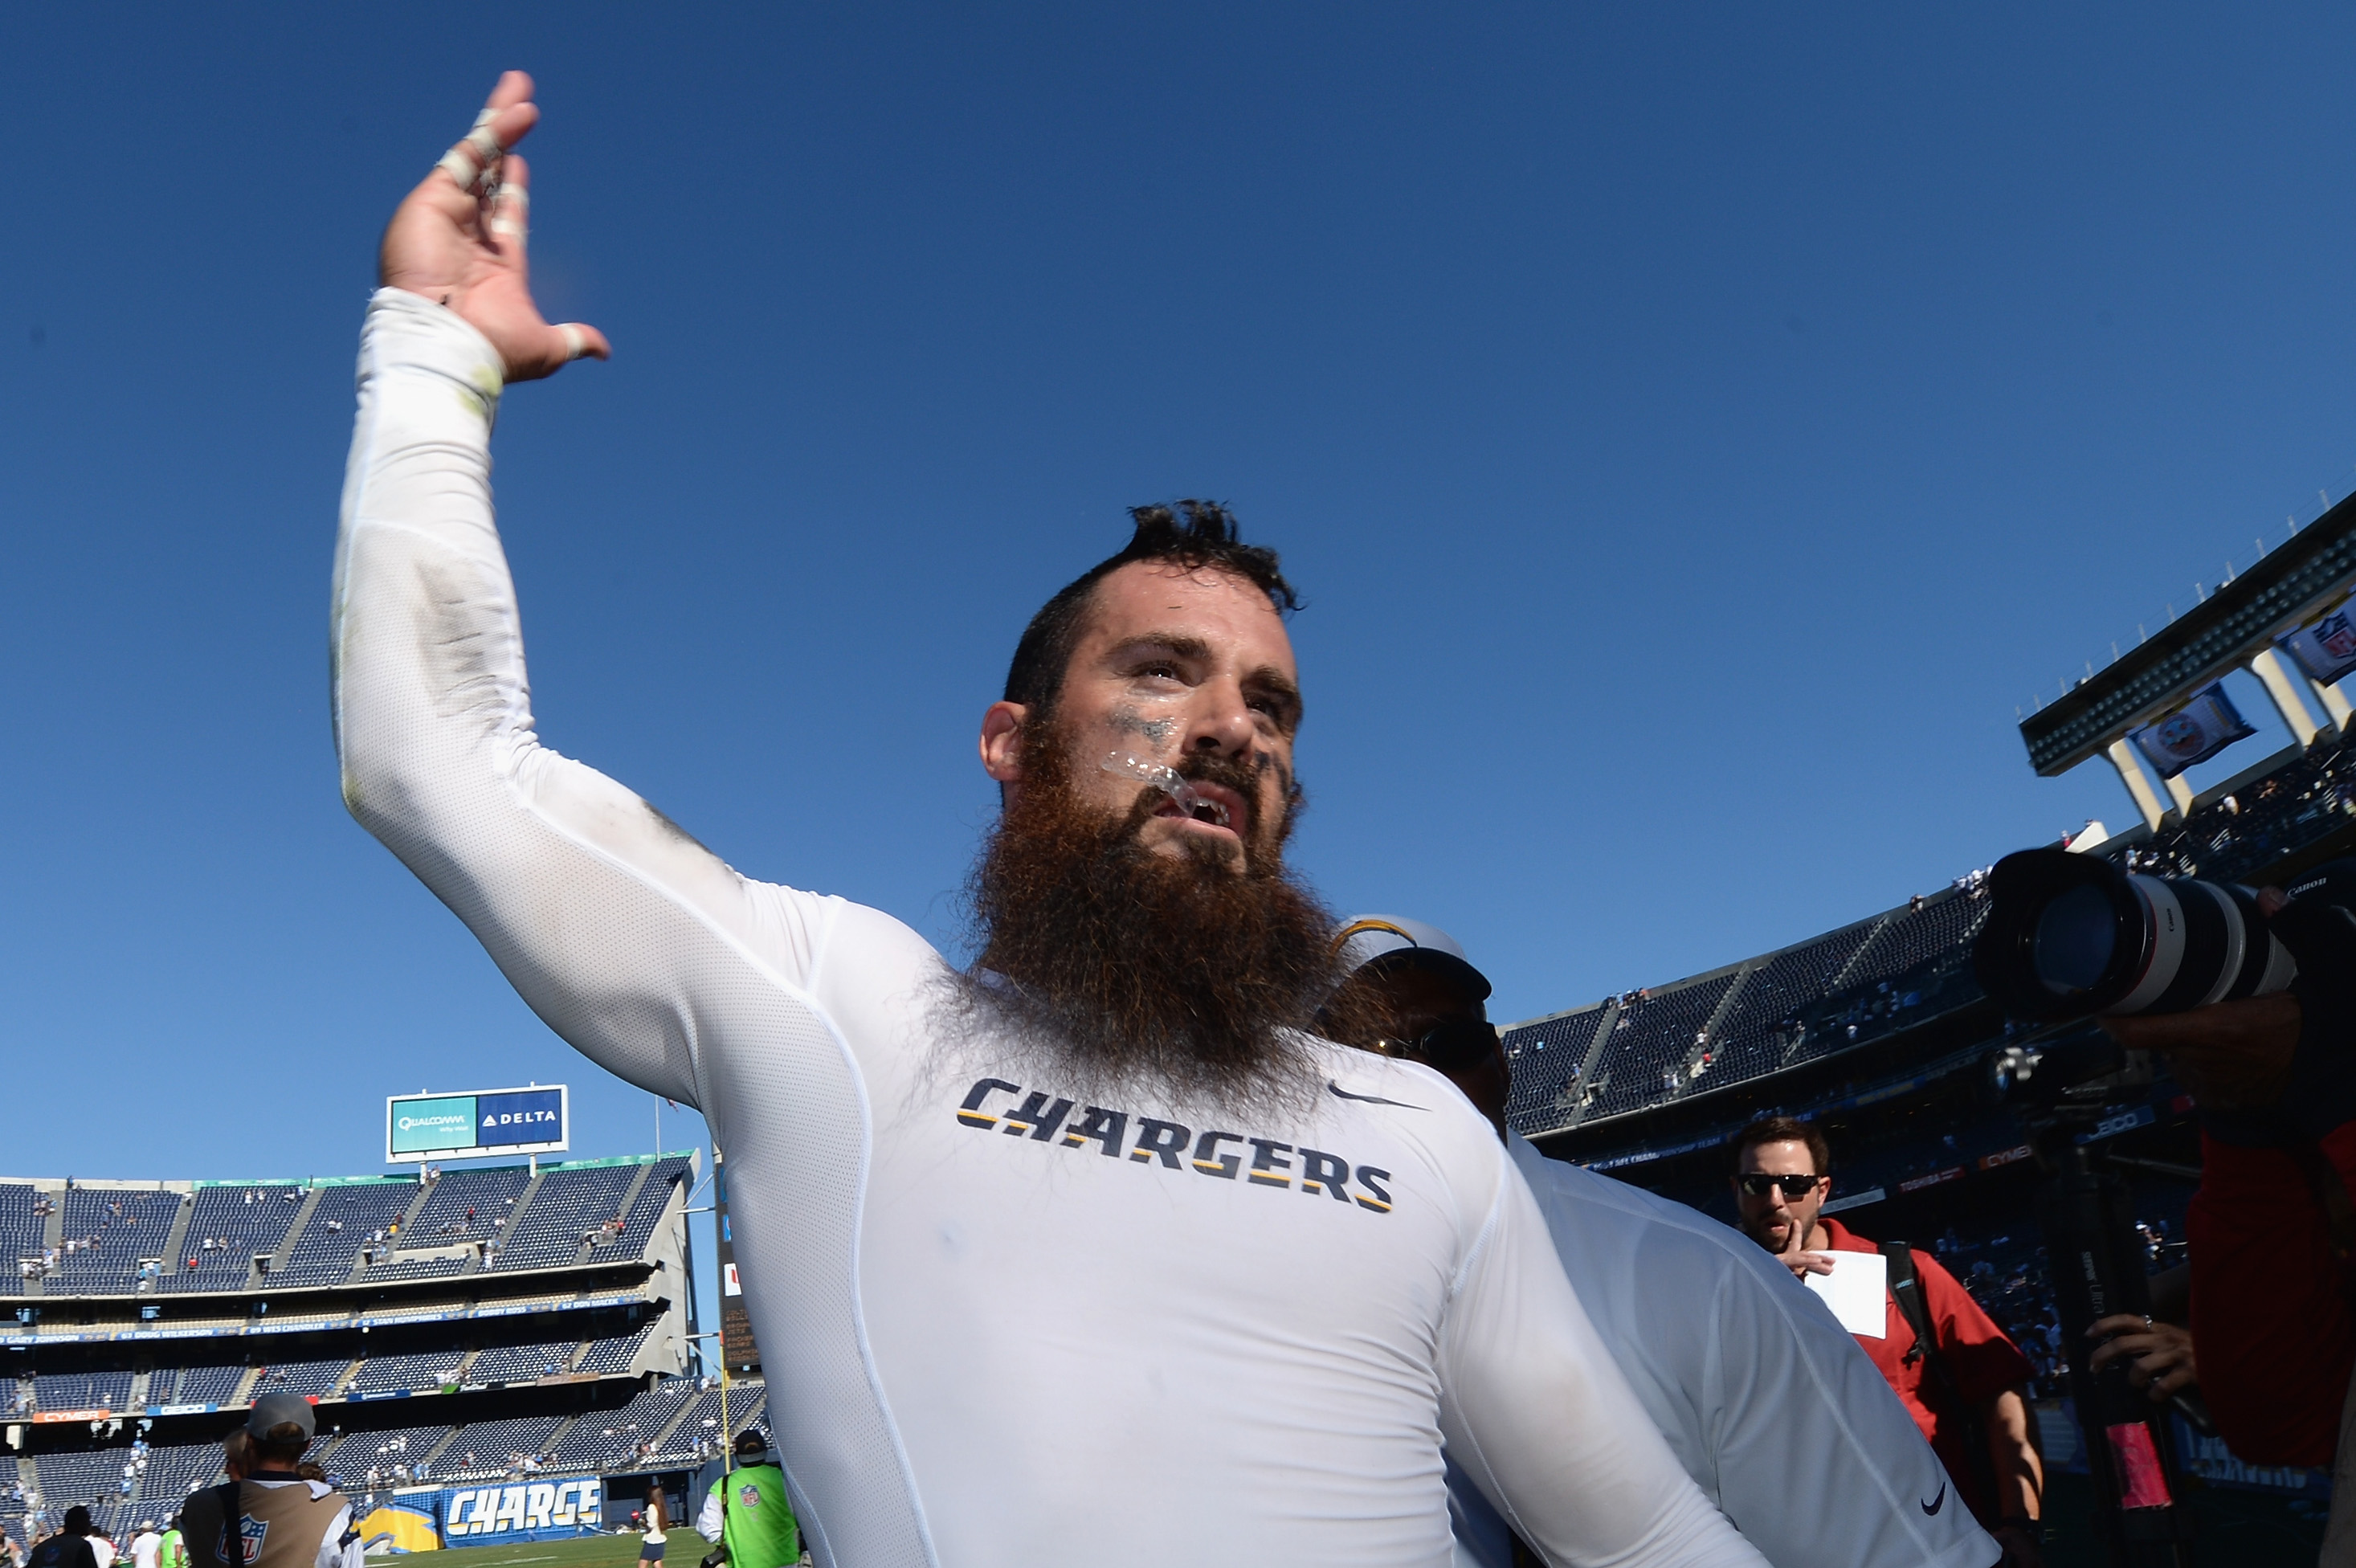 San Diego Chargers Safety Eric Weddle